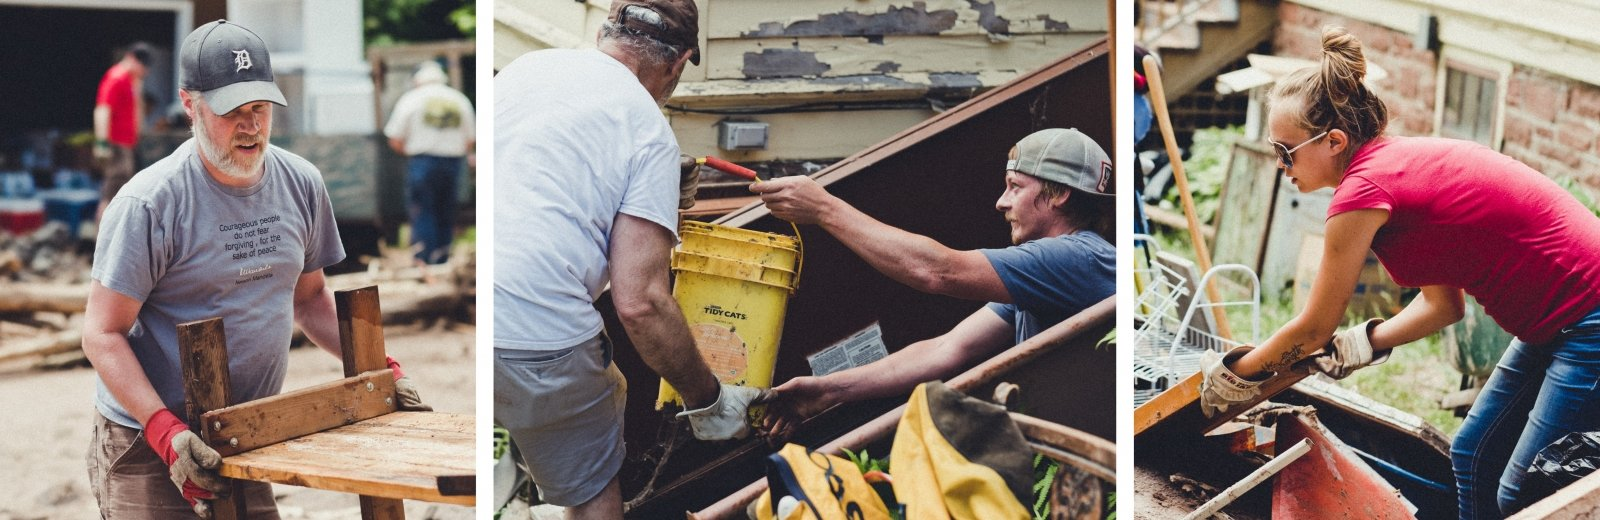 Volunteers helping clean up after the flood.